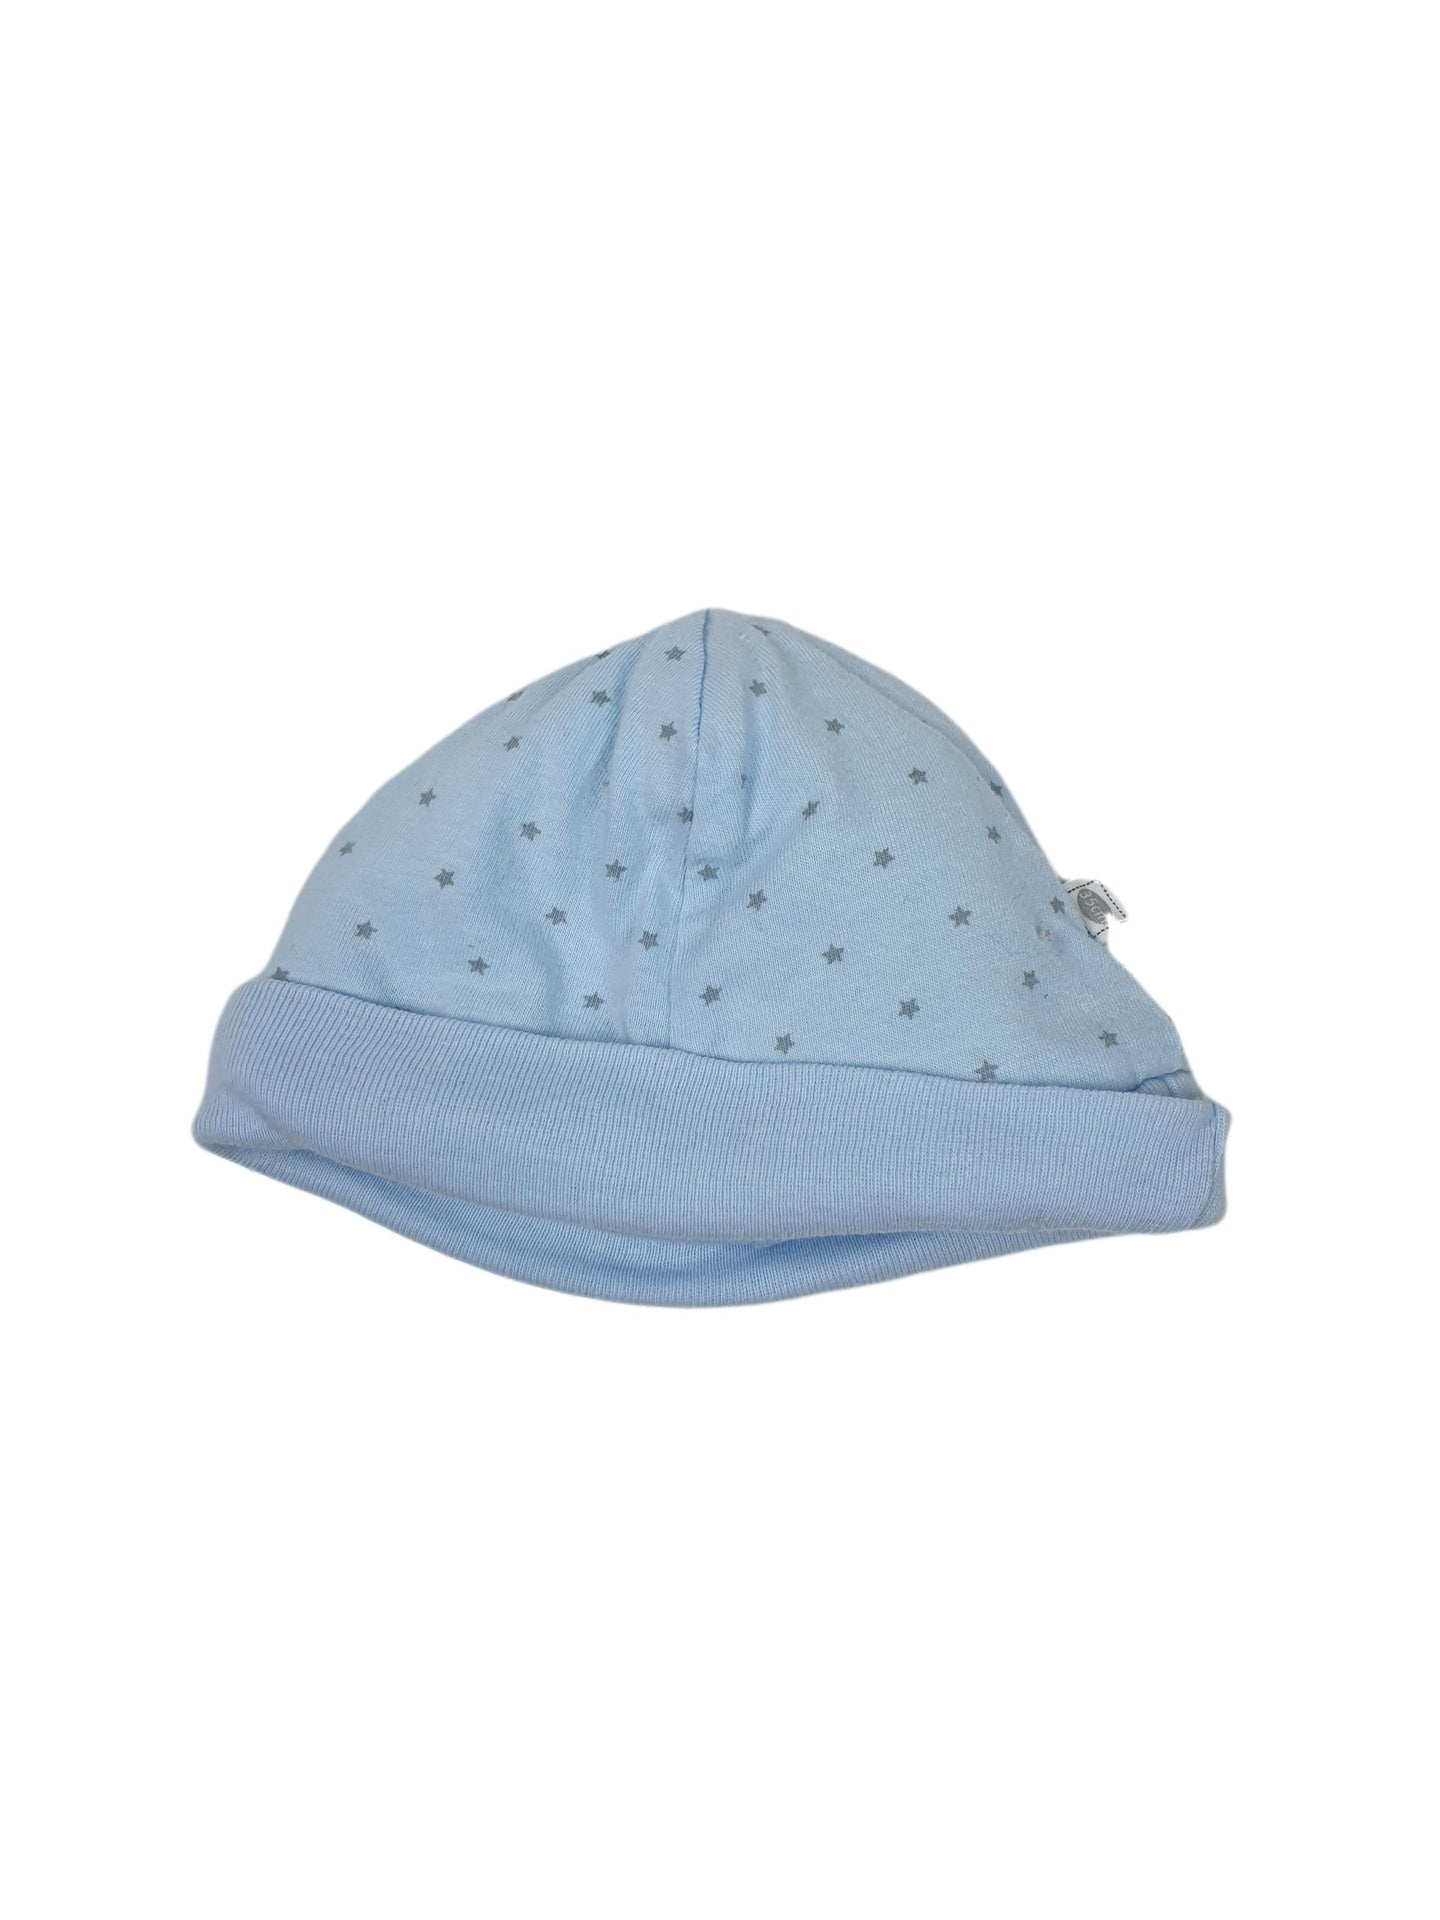 ABSORBA boy hat 0-3m